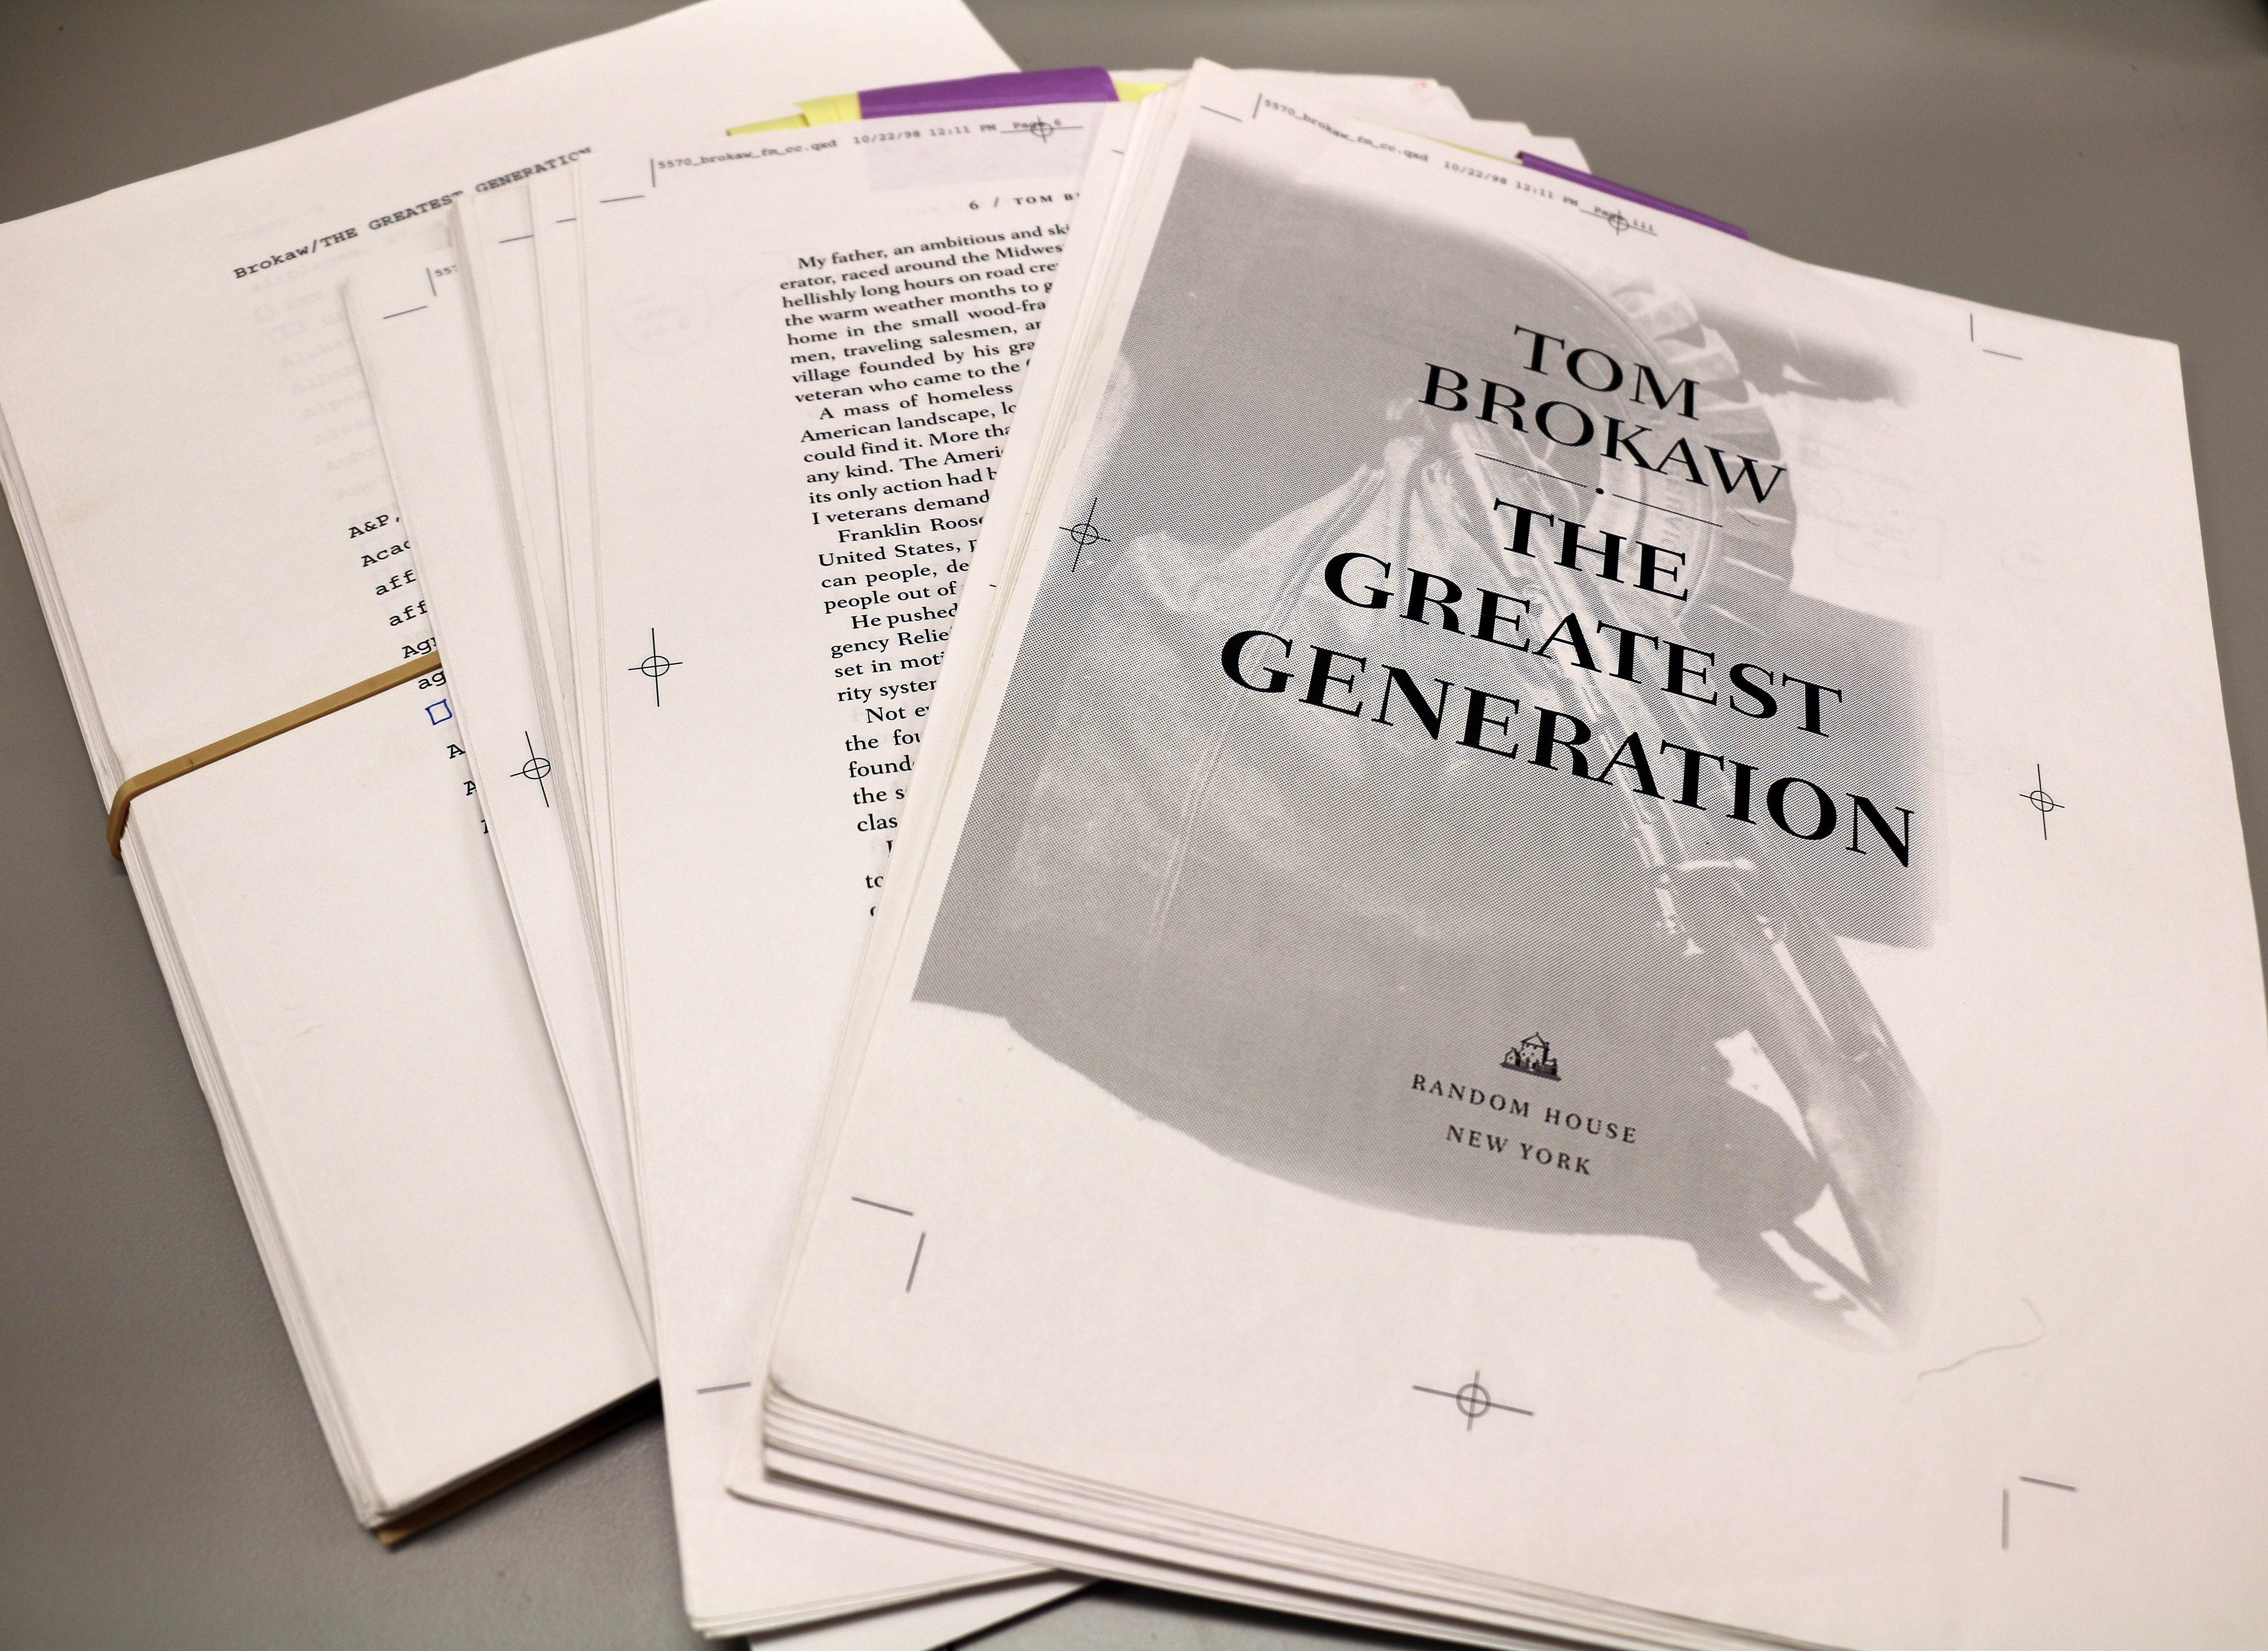 "A galley proof of Brokaw's book, ""The Greatest Generation,\"" as it appears in the Papers of Tom Brokaw."